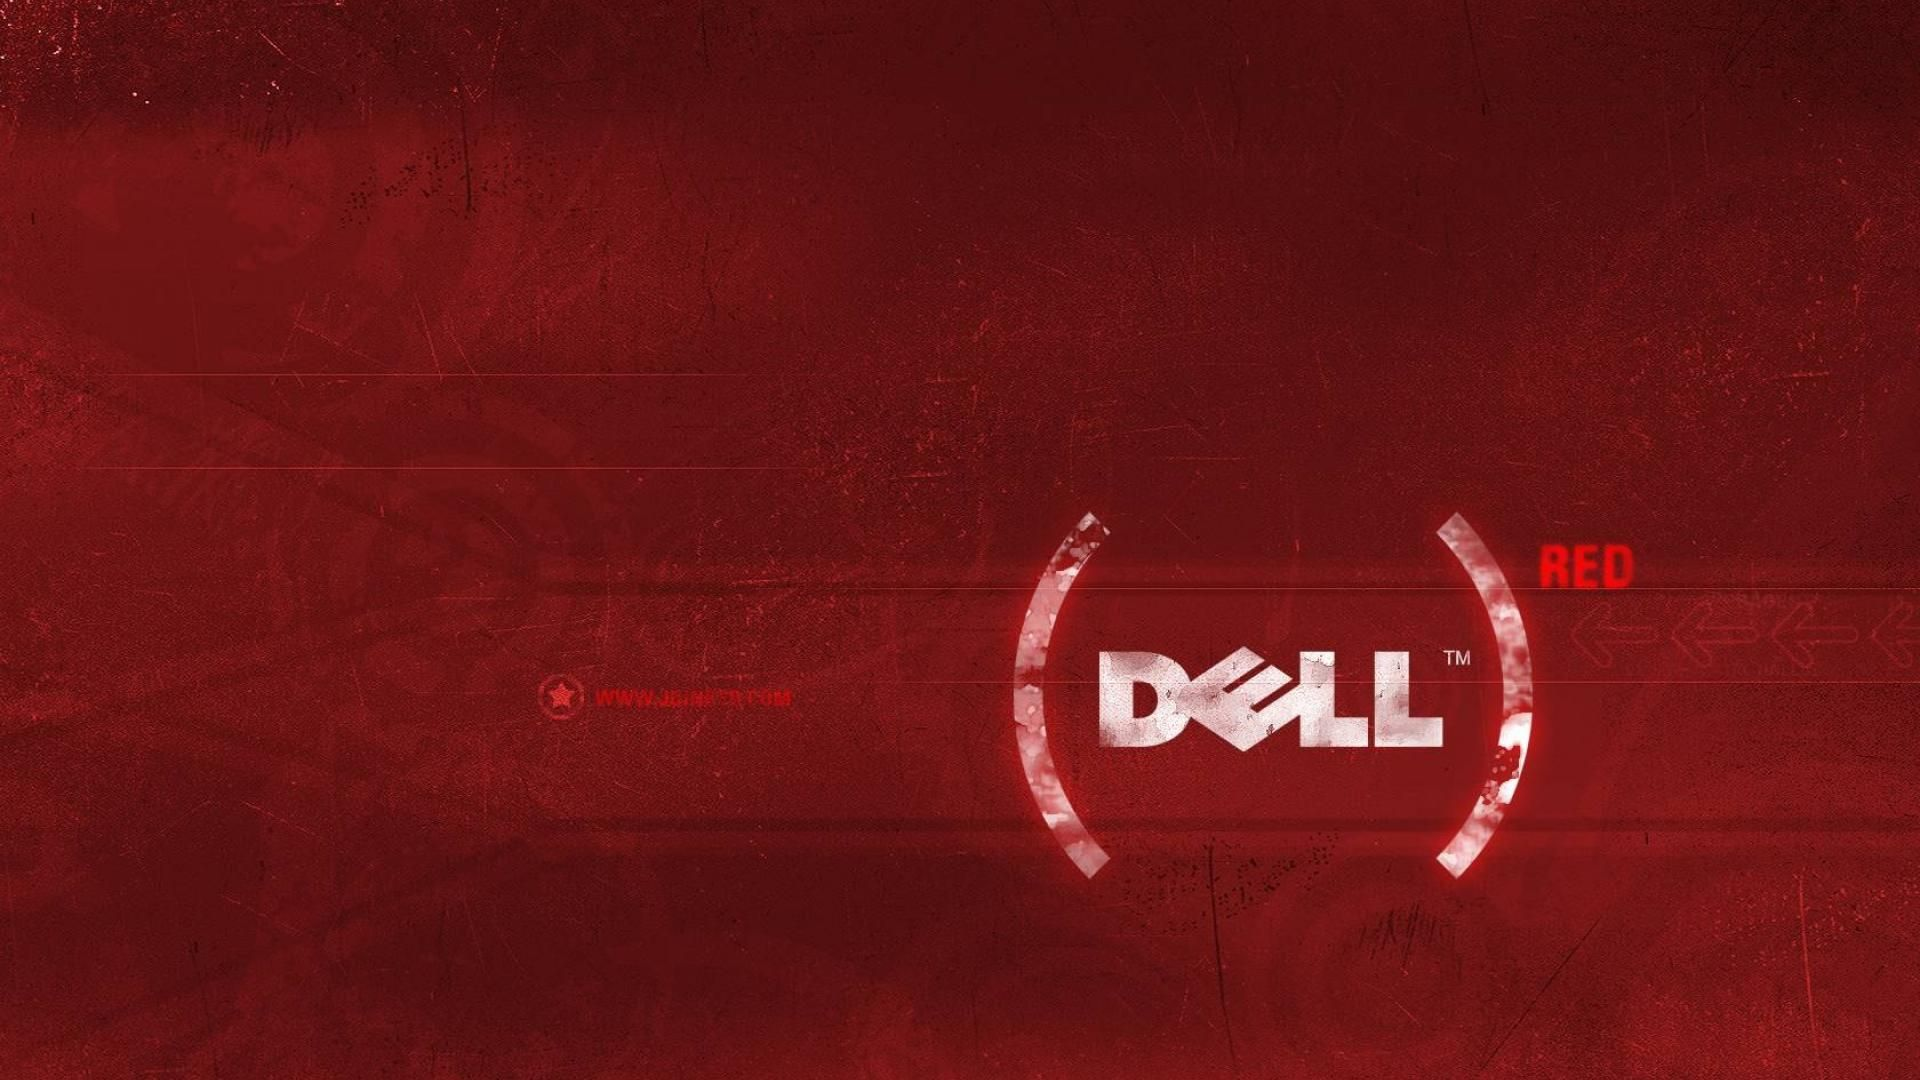 Dell background picture hd